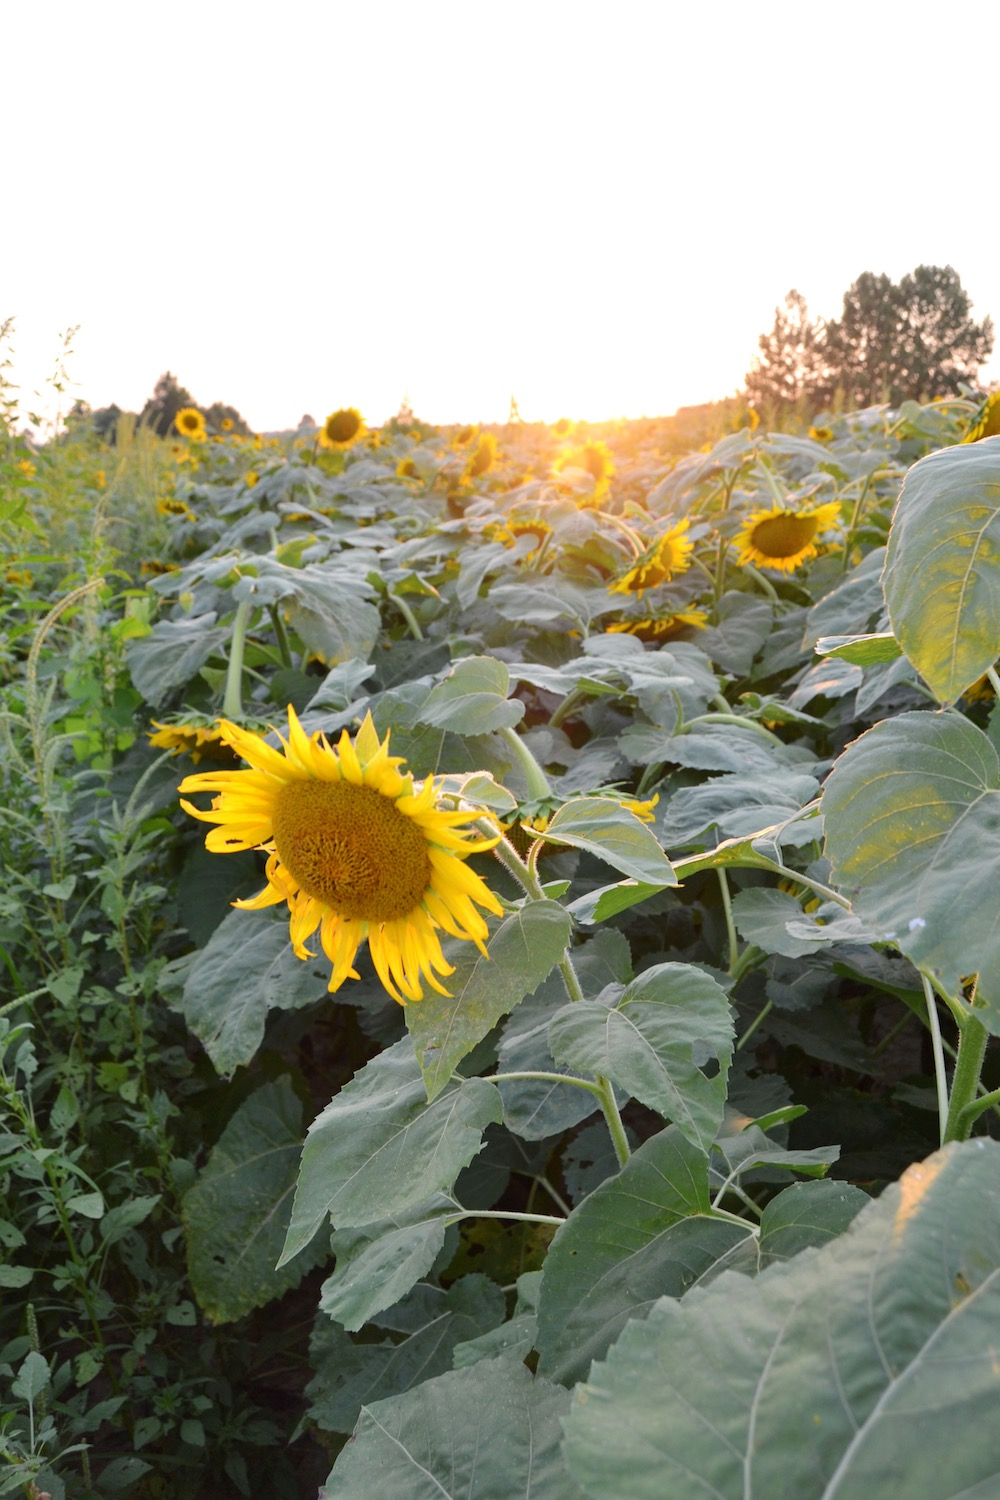 agricenter-sunflowers-memphis.JPG